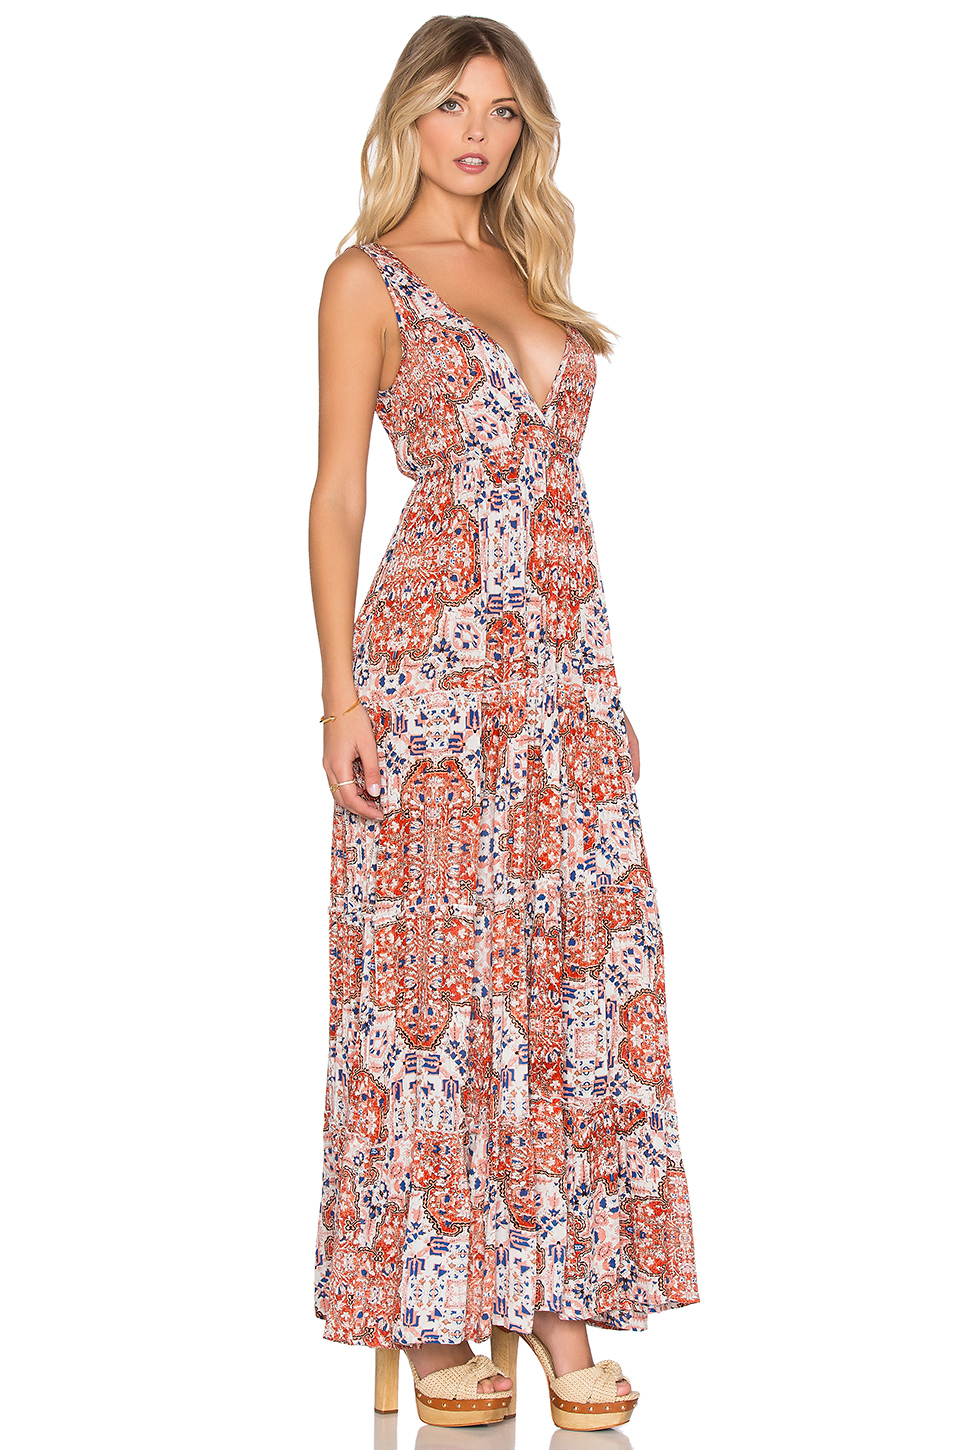 Multicolor and gold maxi dress